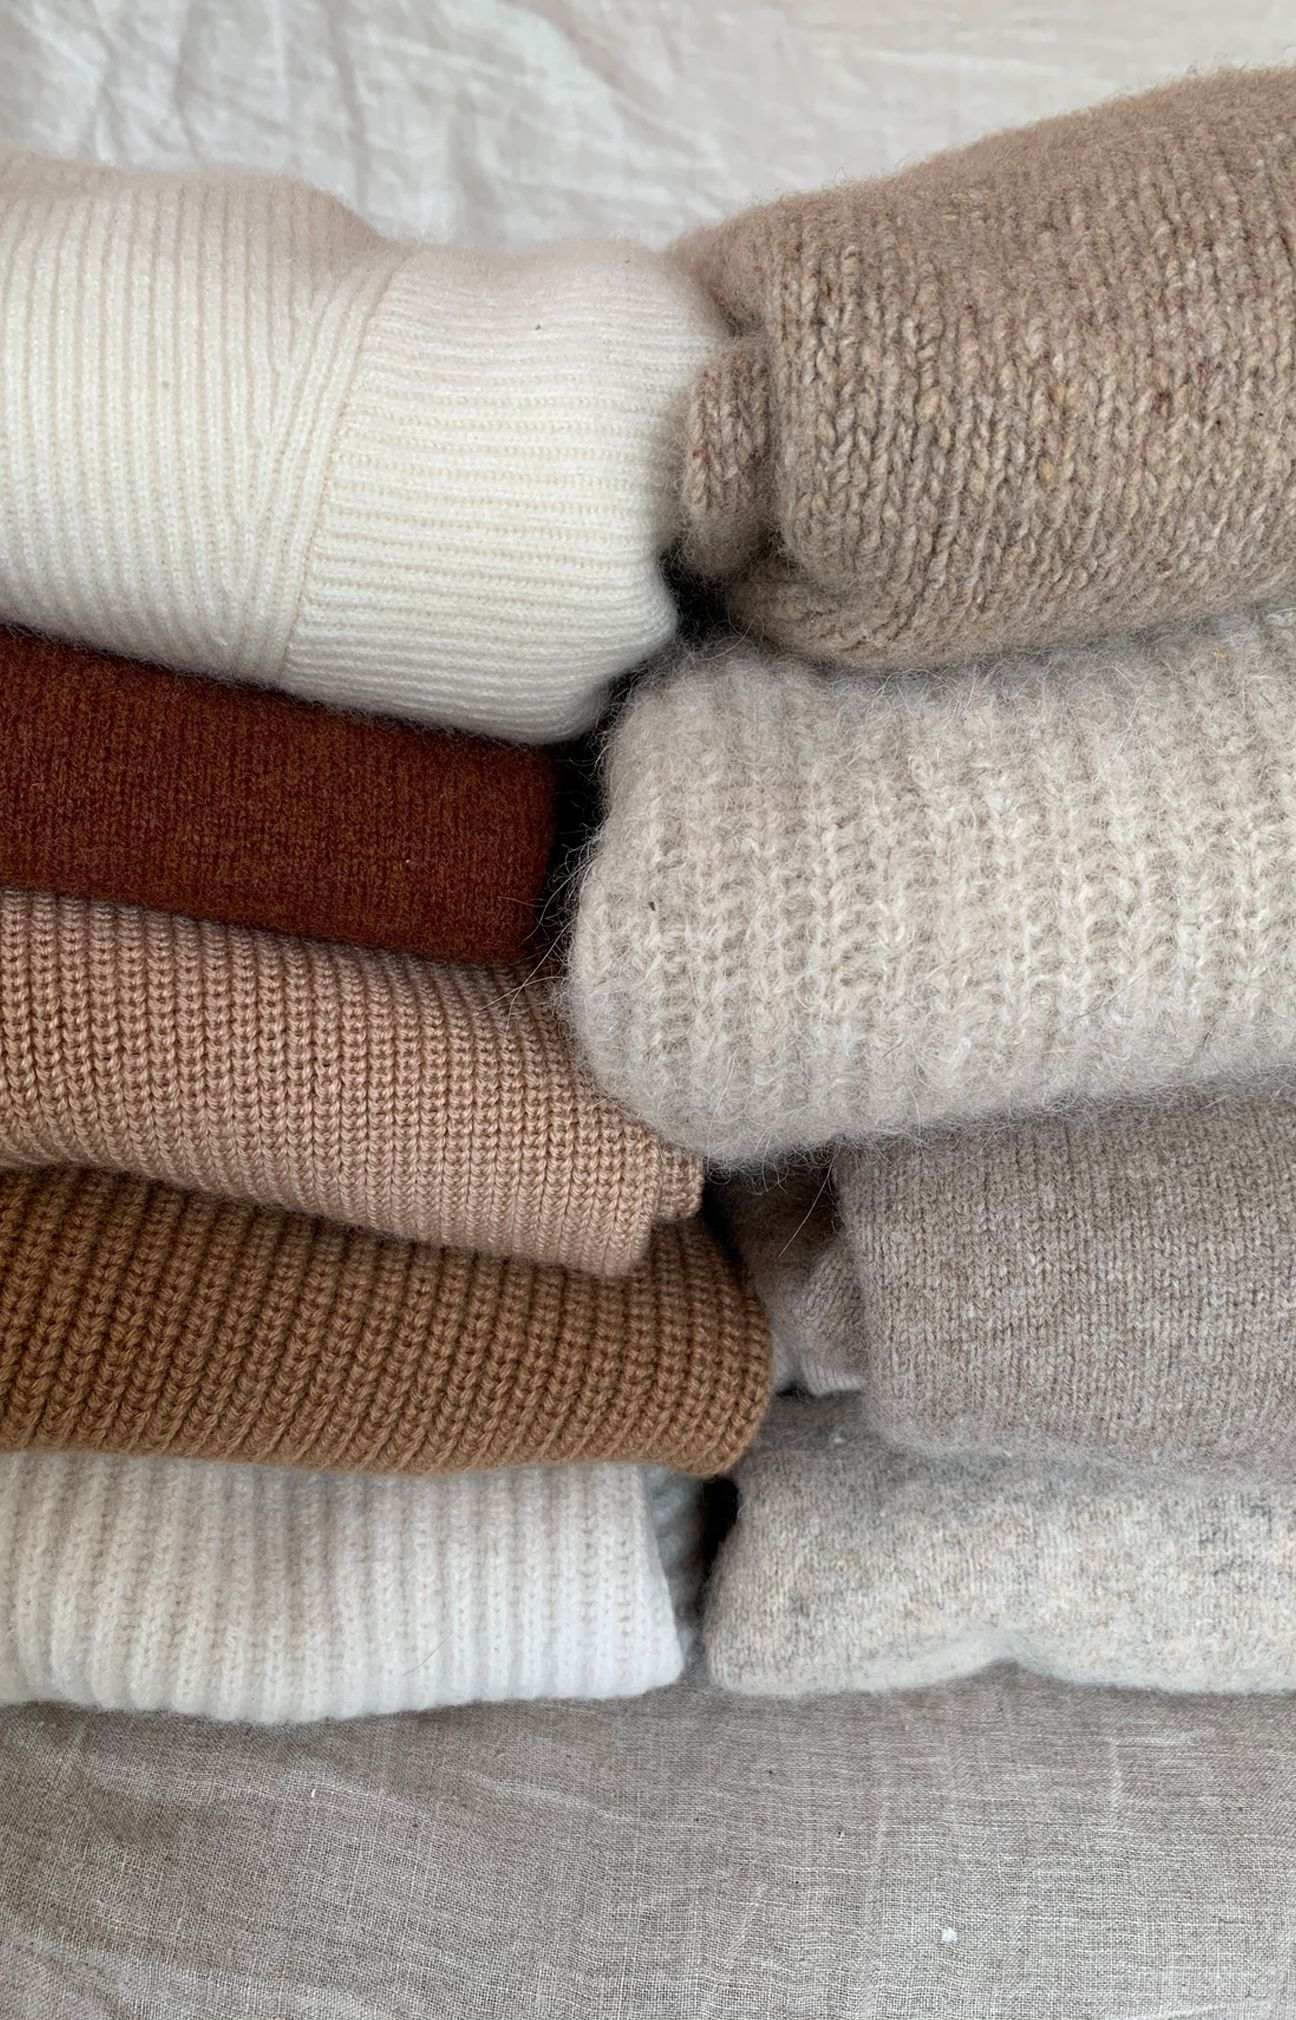 Sustain Your Wardrobe How To Wash Wool Sweaters Cleaning Sweaters Wool Sweaters Sweater Care